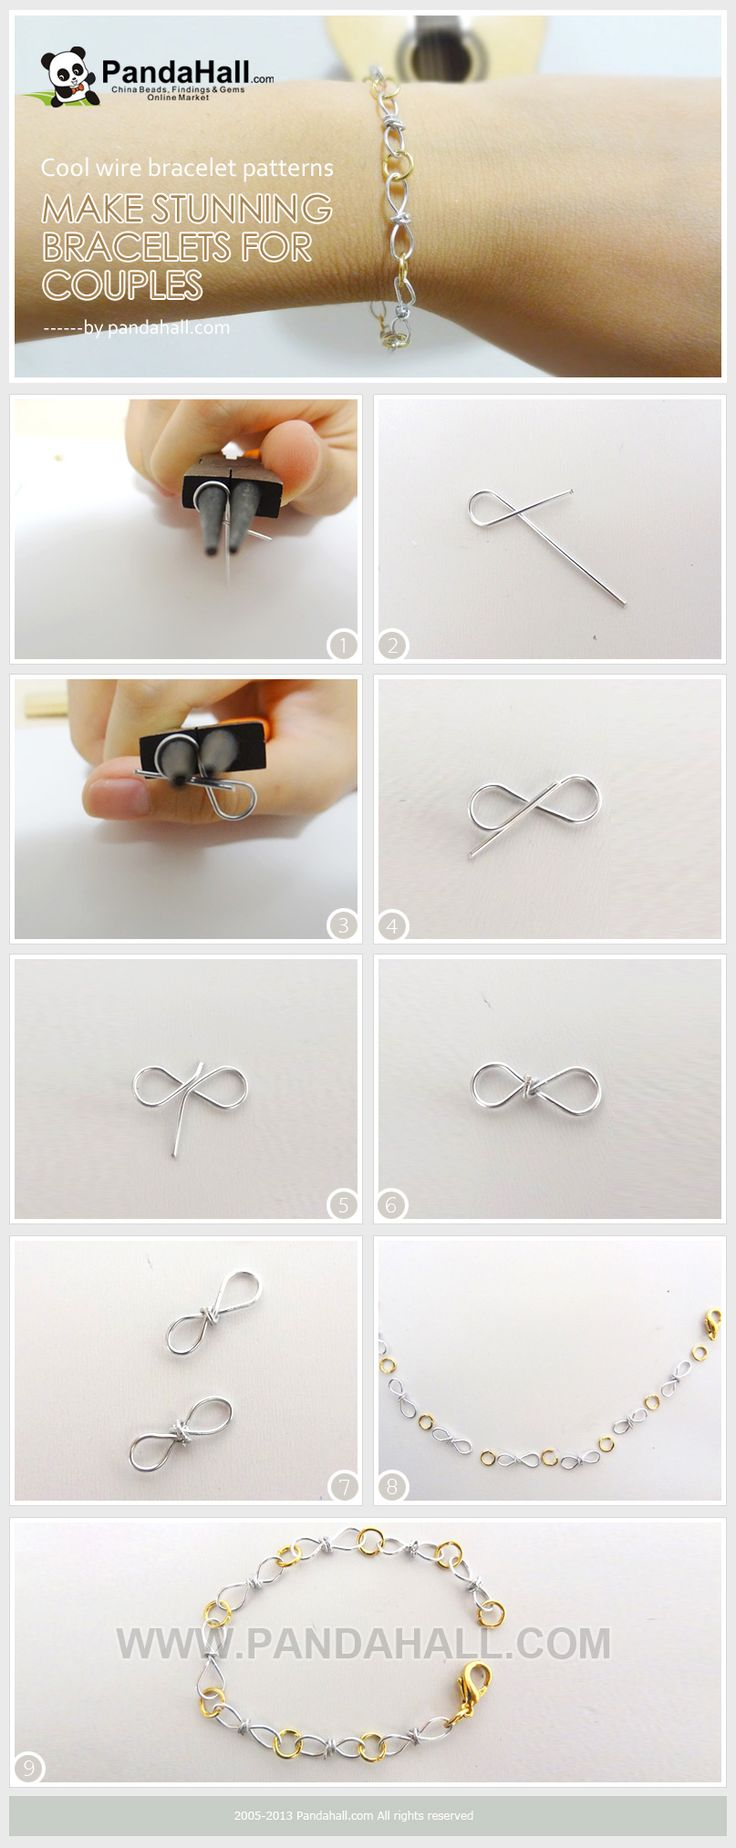 These pictures illustrate the procedures for designing truly cool wire bracelet patterns. Without any intricate or feminine decorations, these can also regarded as sweet gift bracelets for couples.